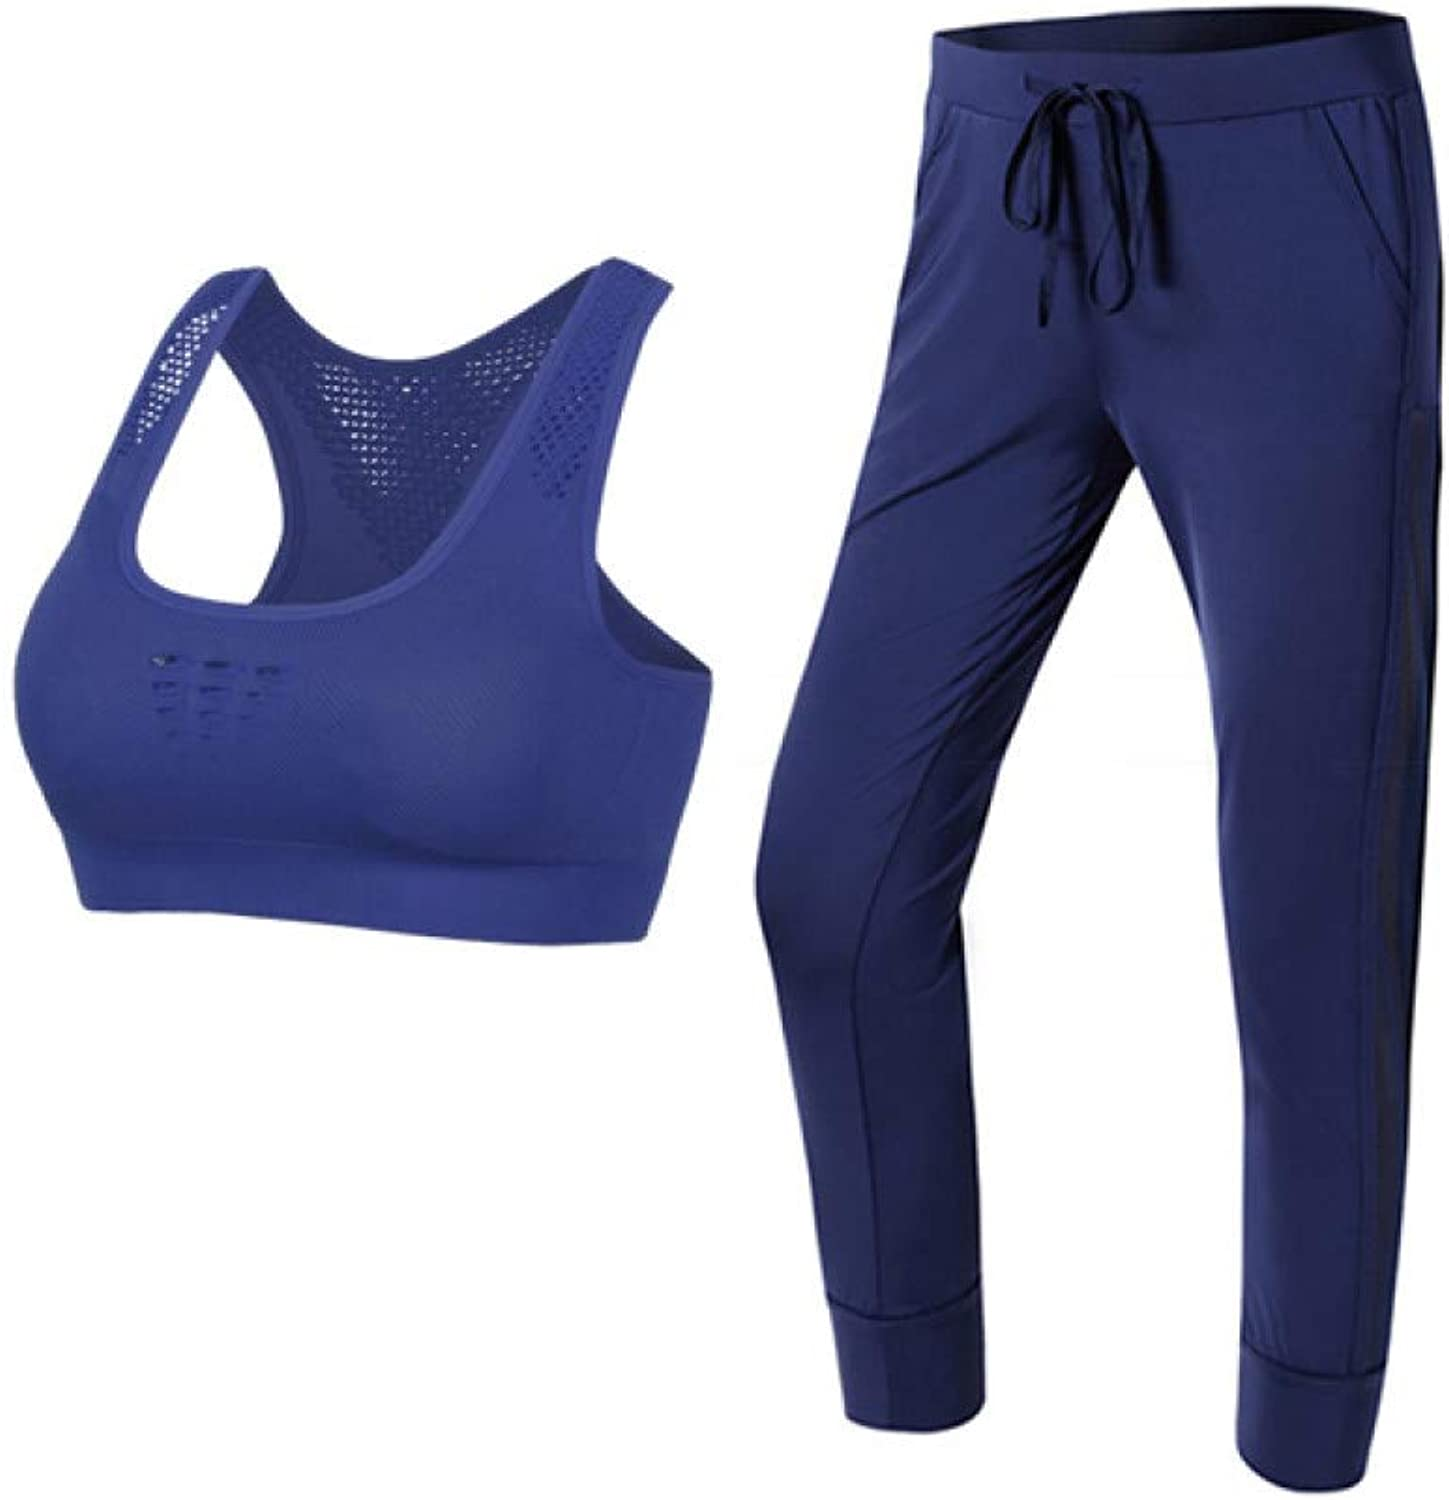 SYLHXR Women Yoga Sets Vest Fitness Suitclothing Workout Clothing Running Tracksuit Sports Wear Sport Suits Yoga Pant